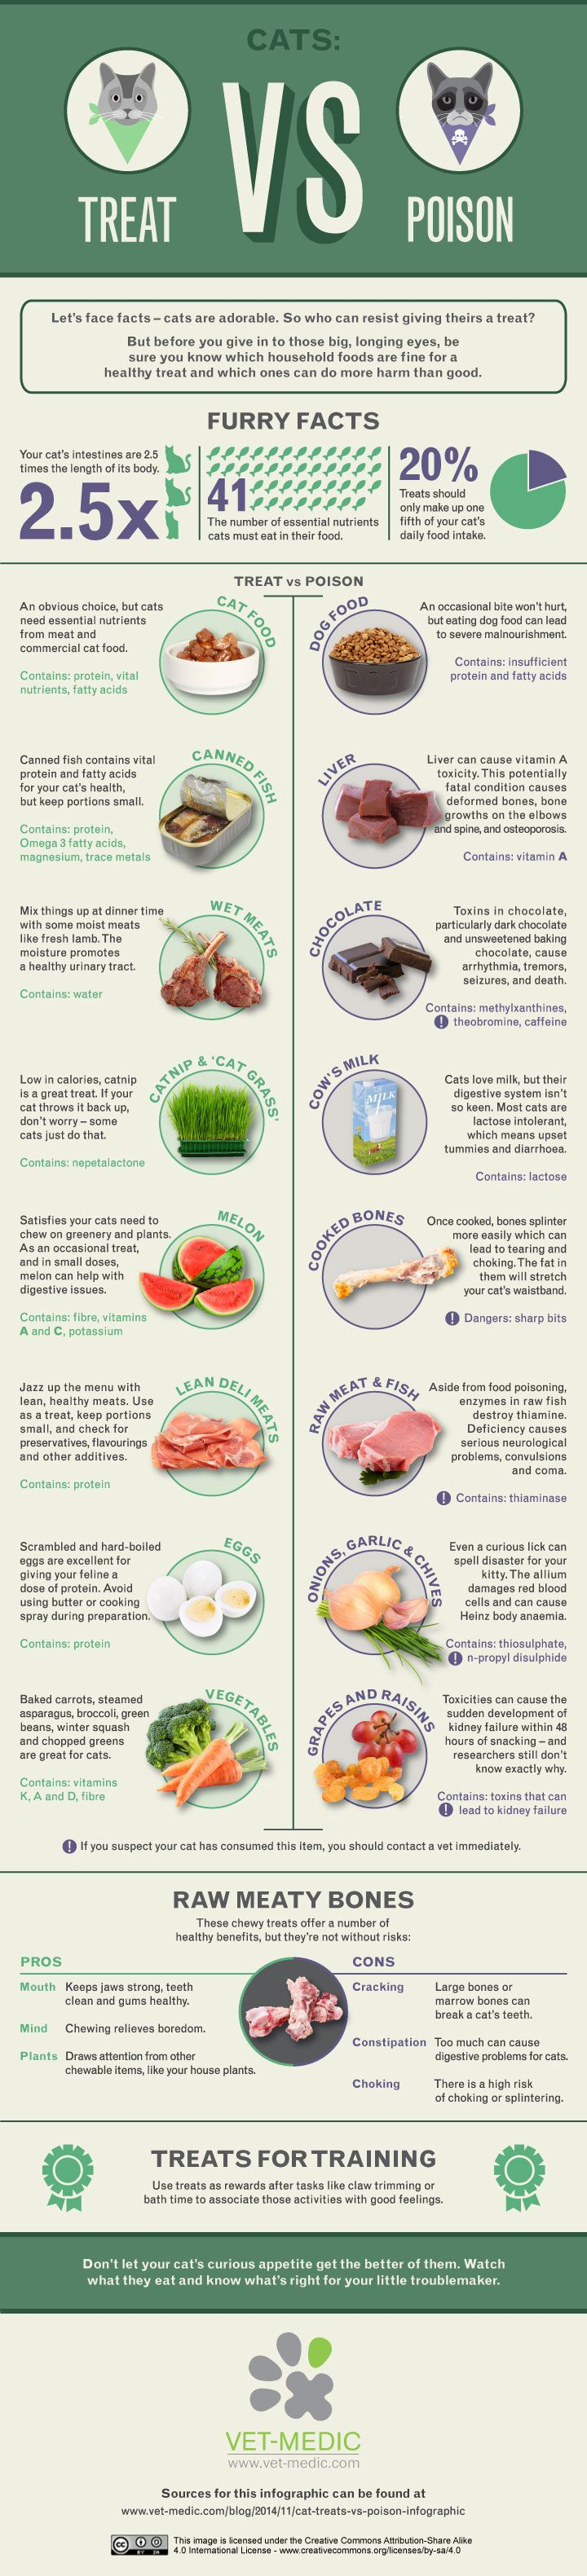 Infographic: Food You Should Never Feed To Your Cats - DesignTAXI.com